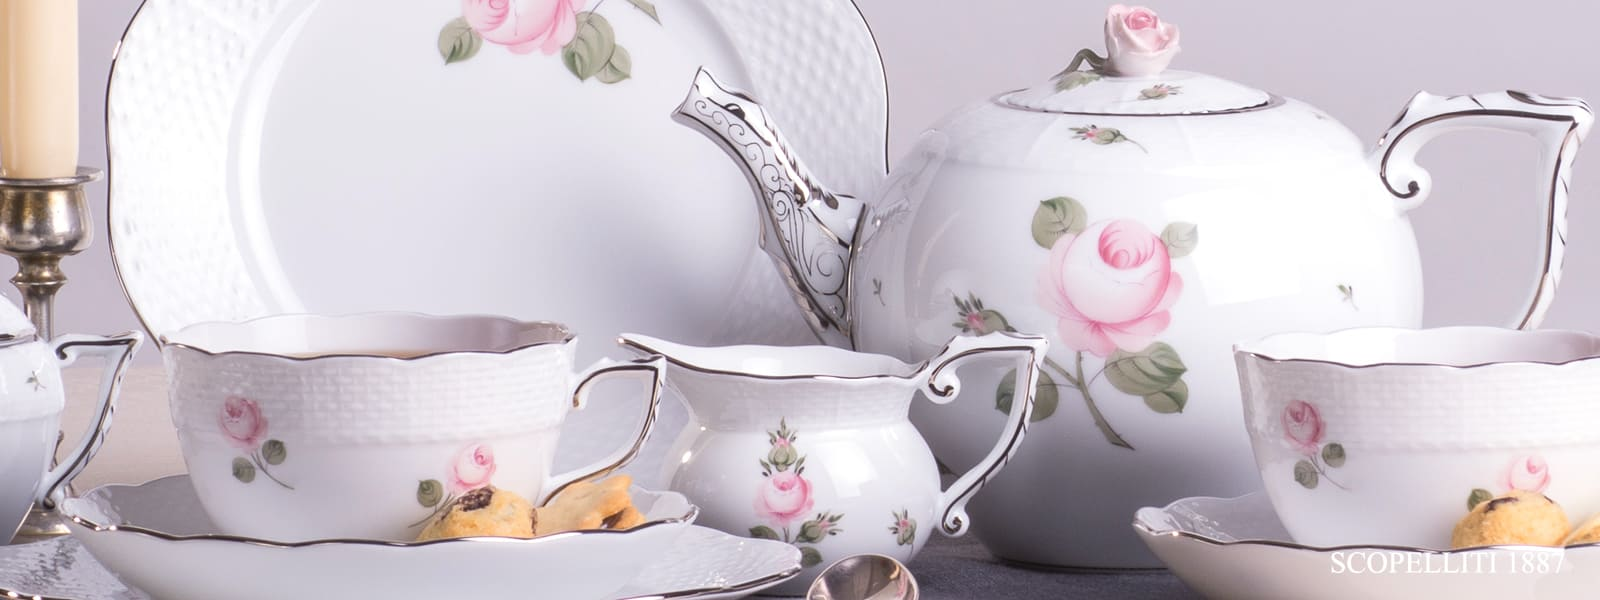 romantic herend porcelain decoration with platinum Viennese platinum rose